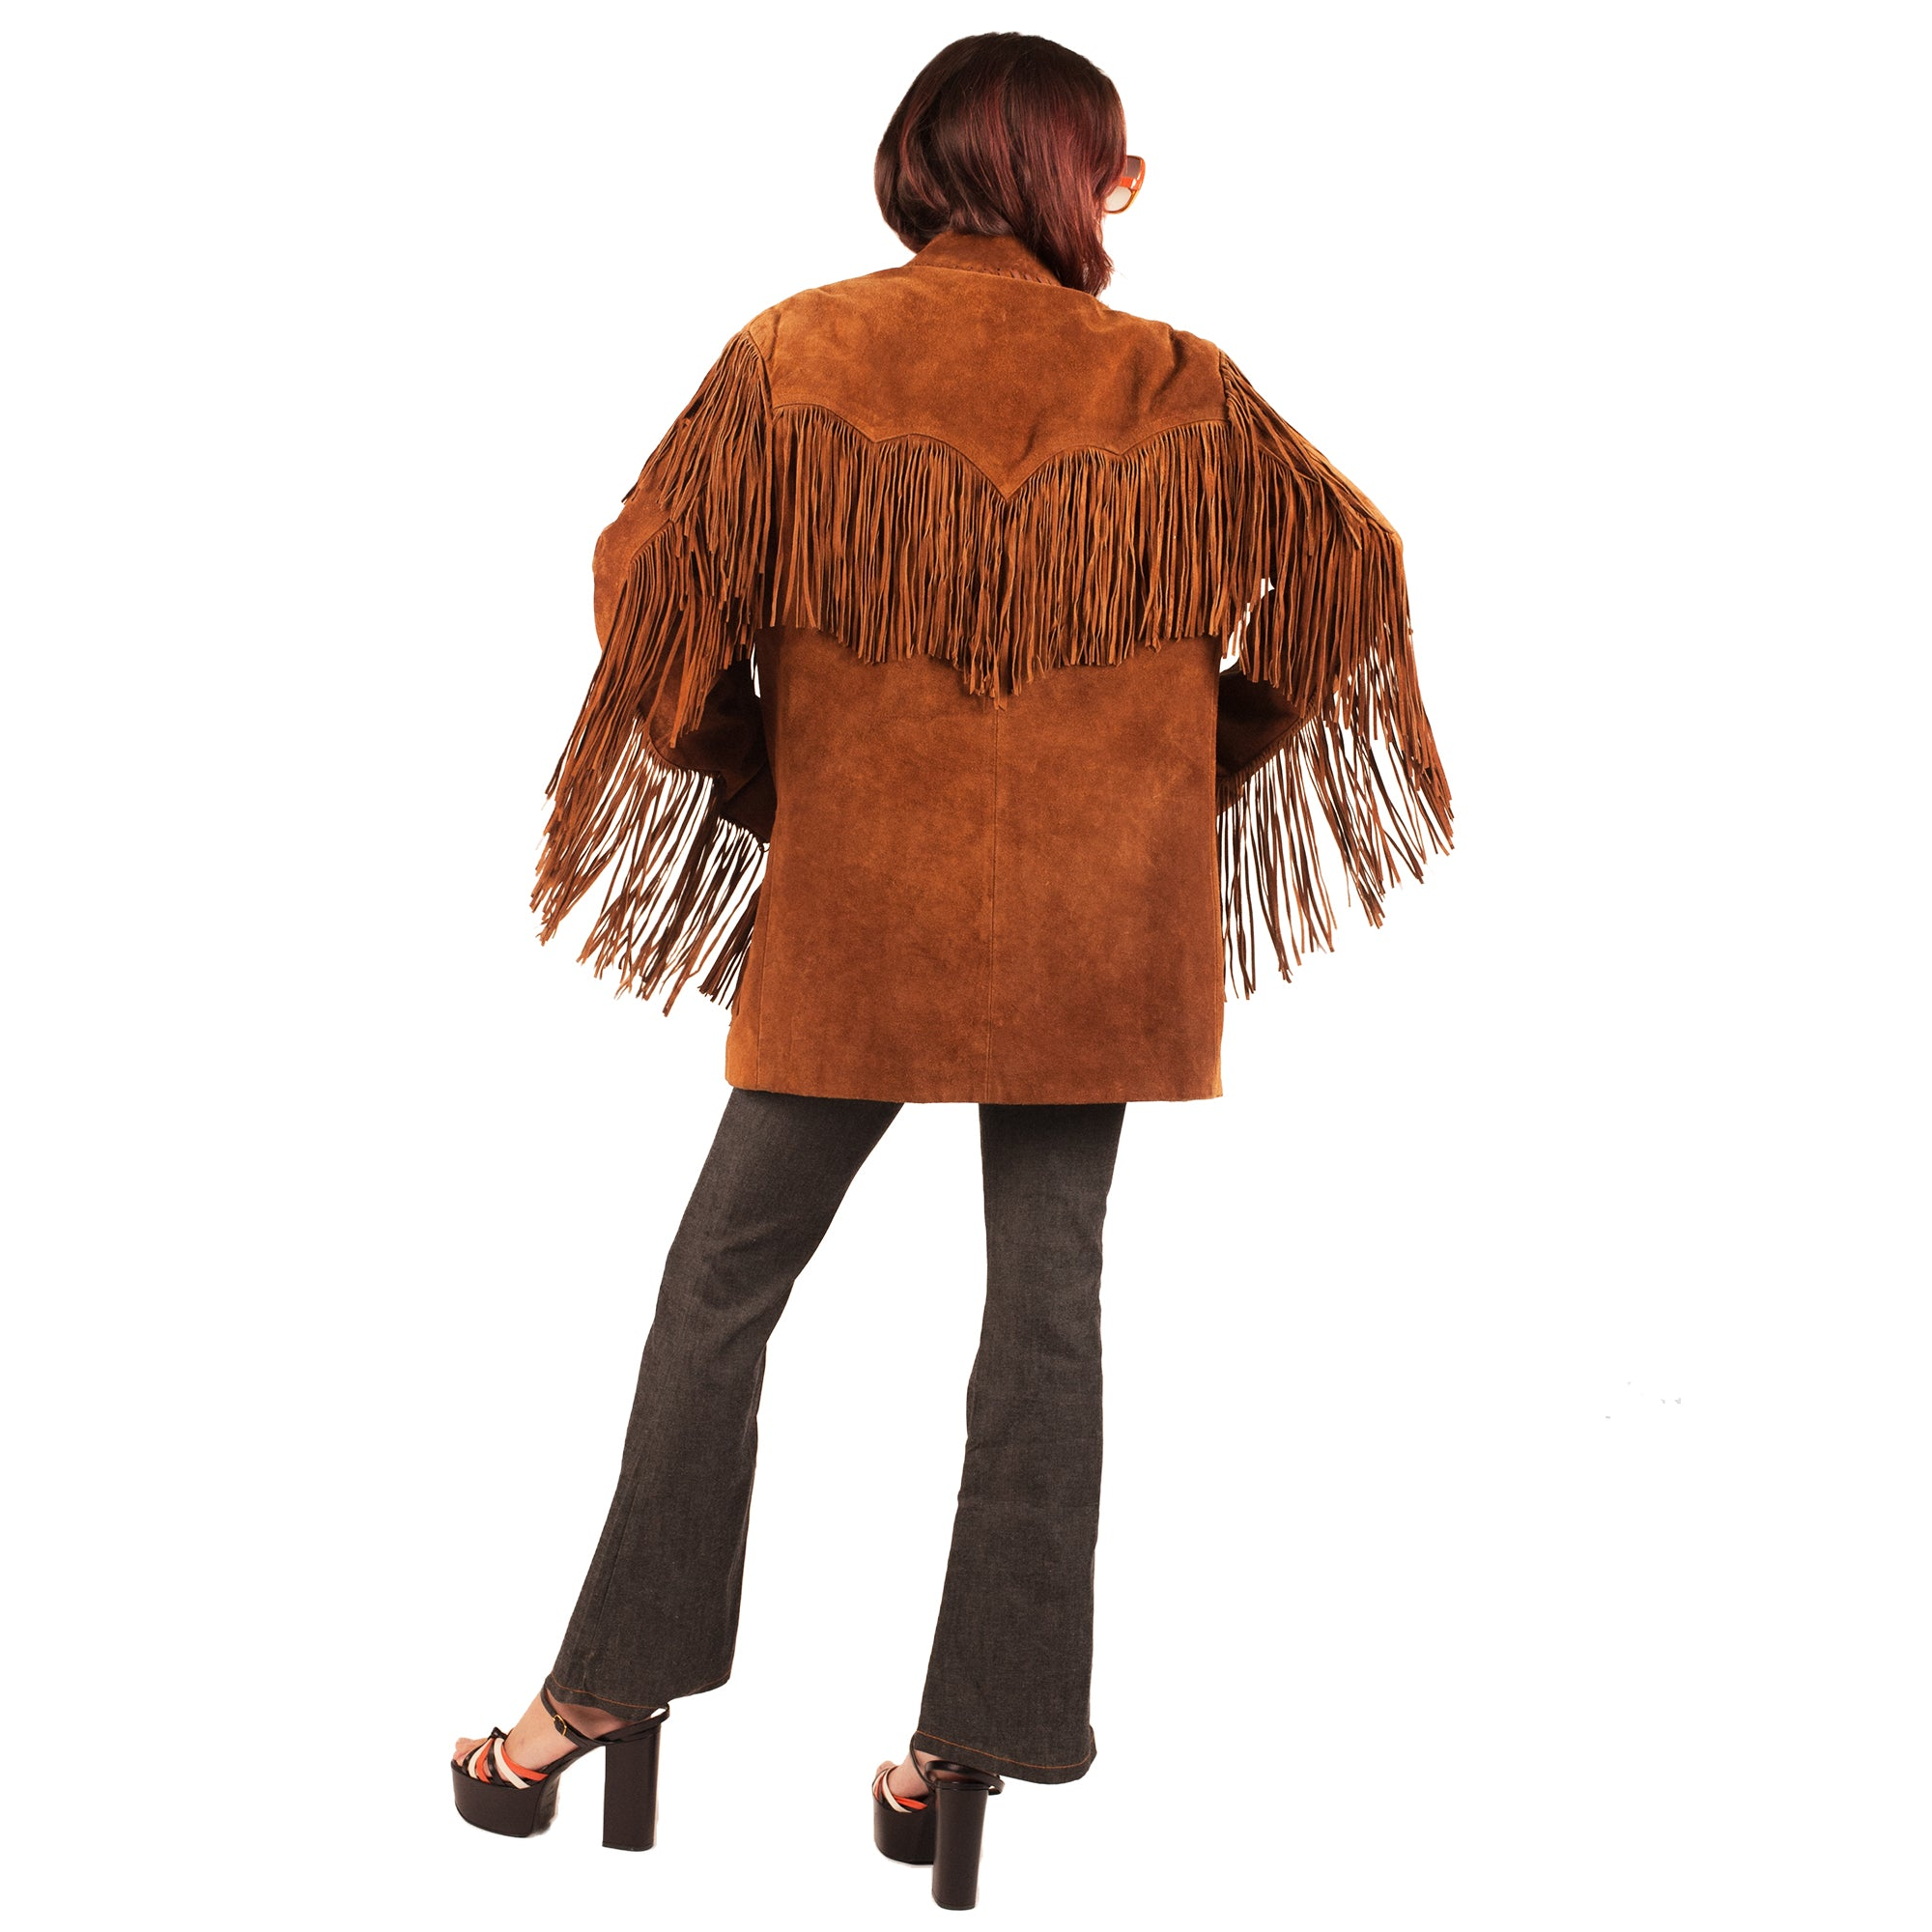 Suede Tassel Jacket (Tan) UK 10-14